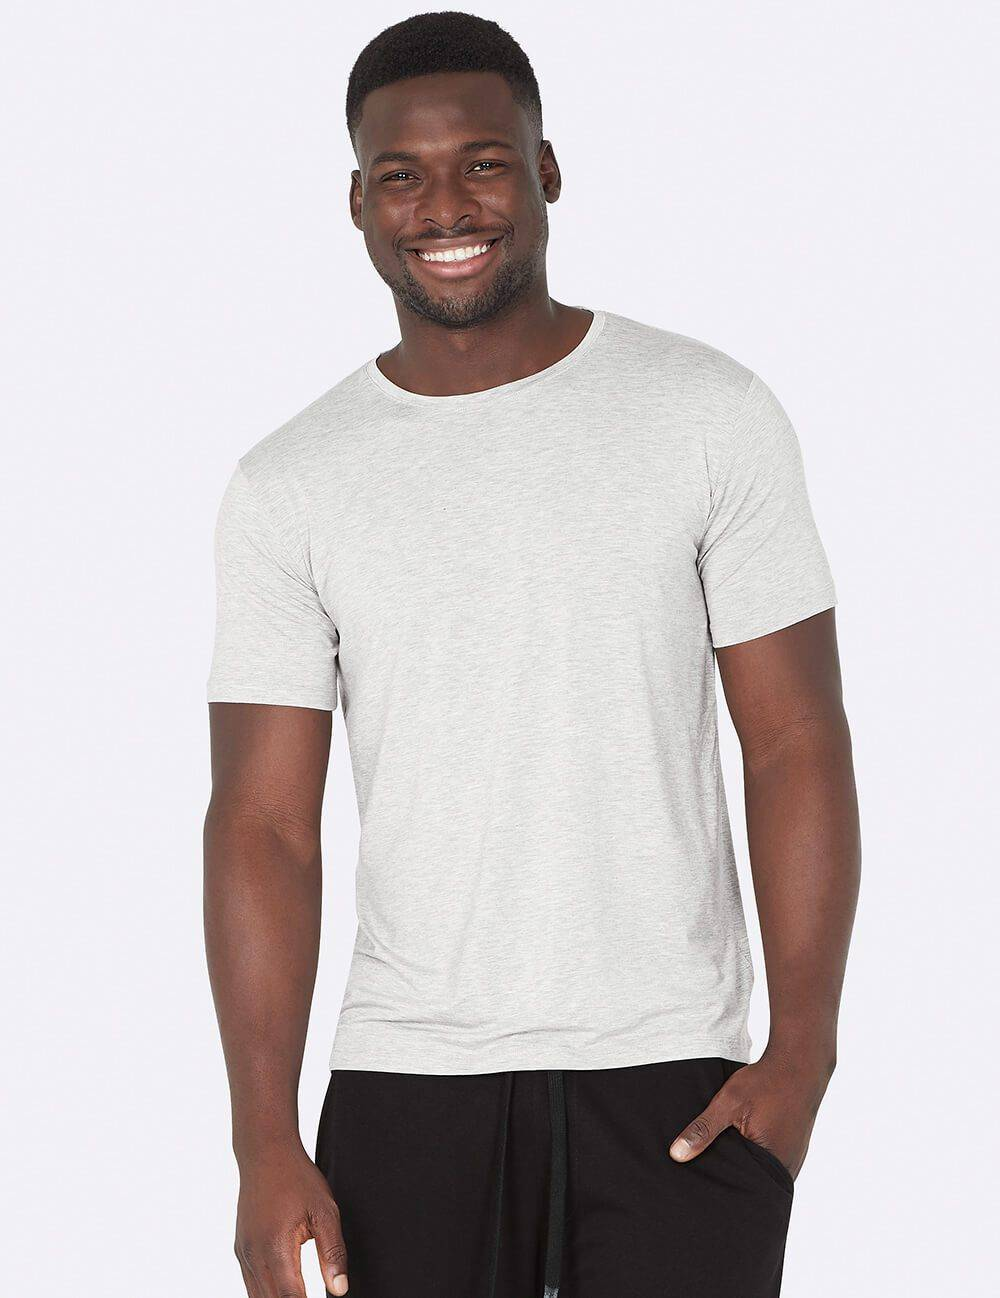 boody affordable ethical mens tees